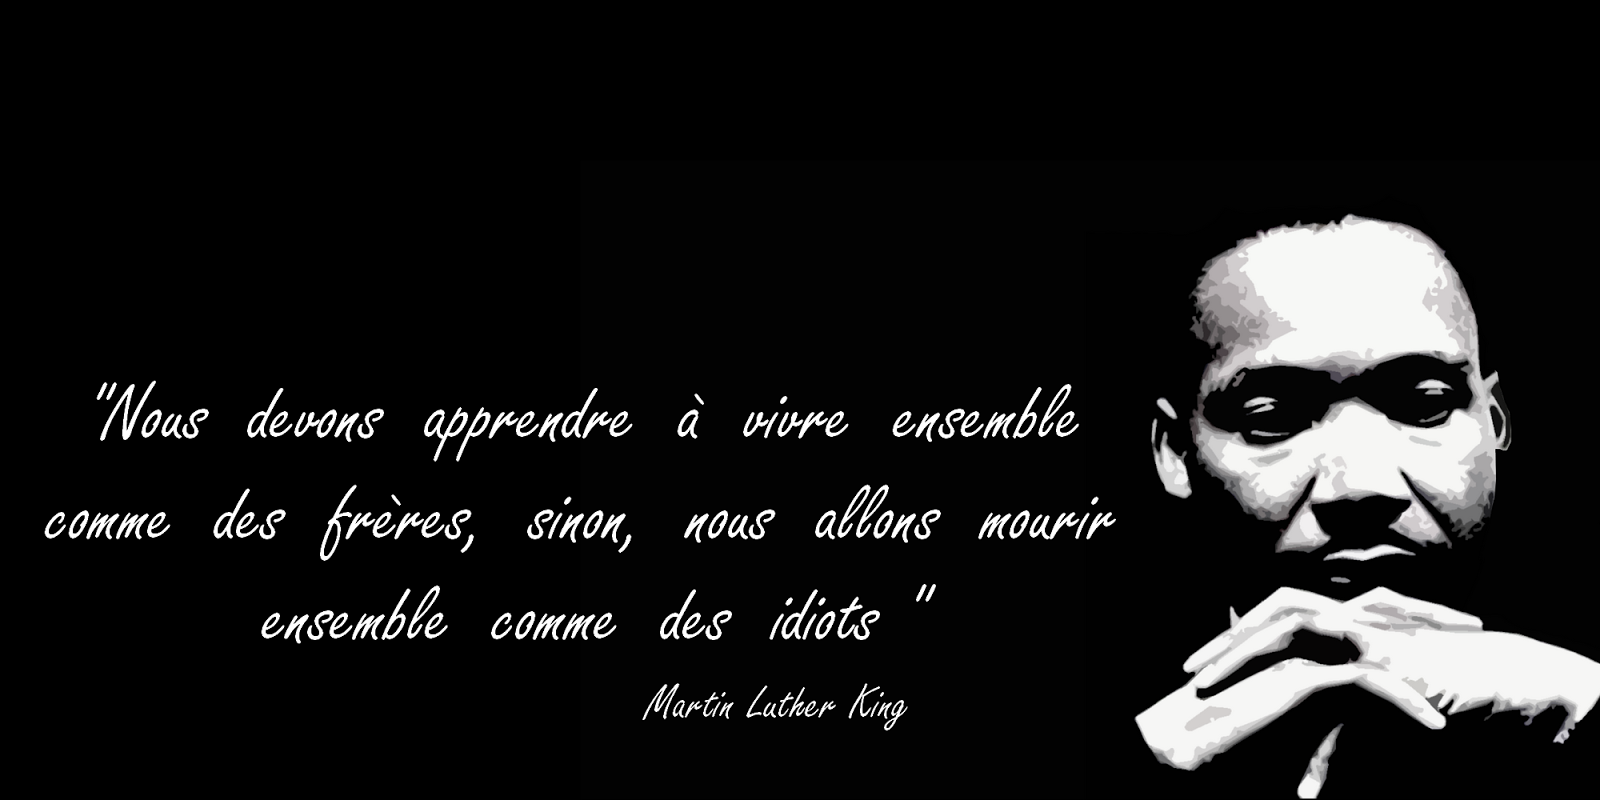 citation savoir vivre de Martin Luther King